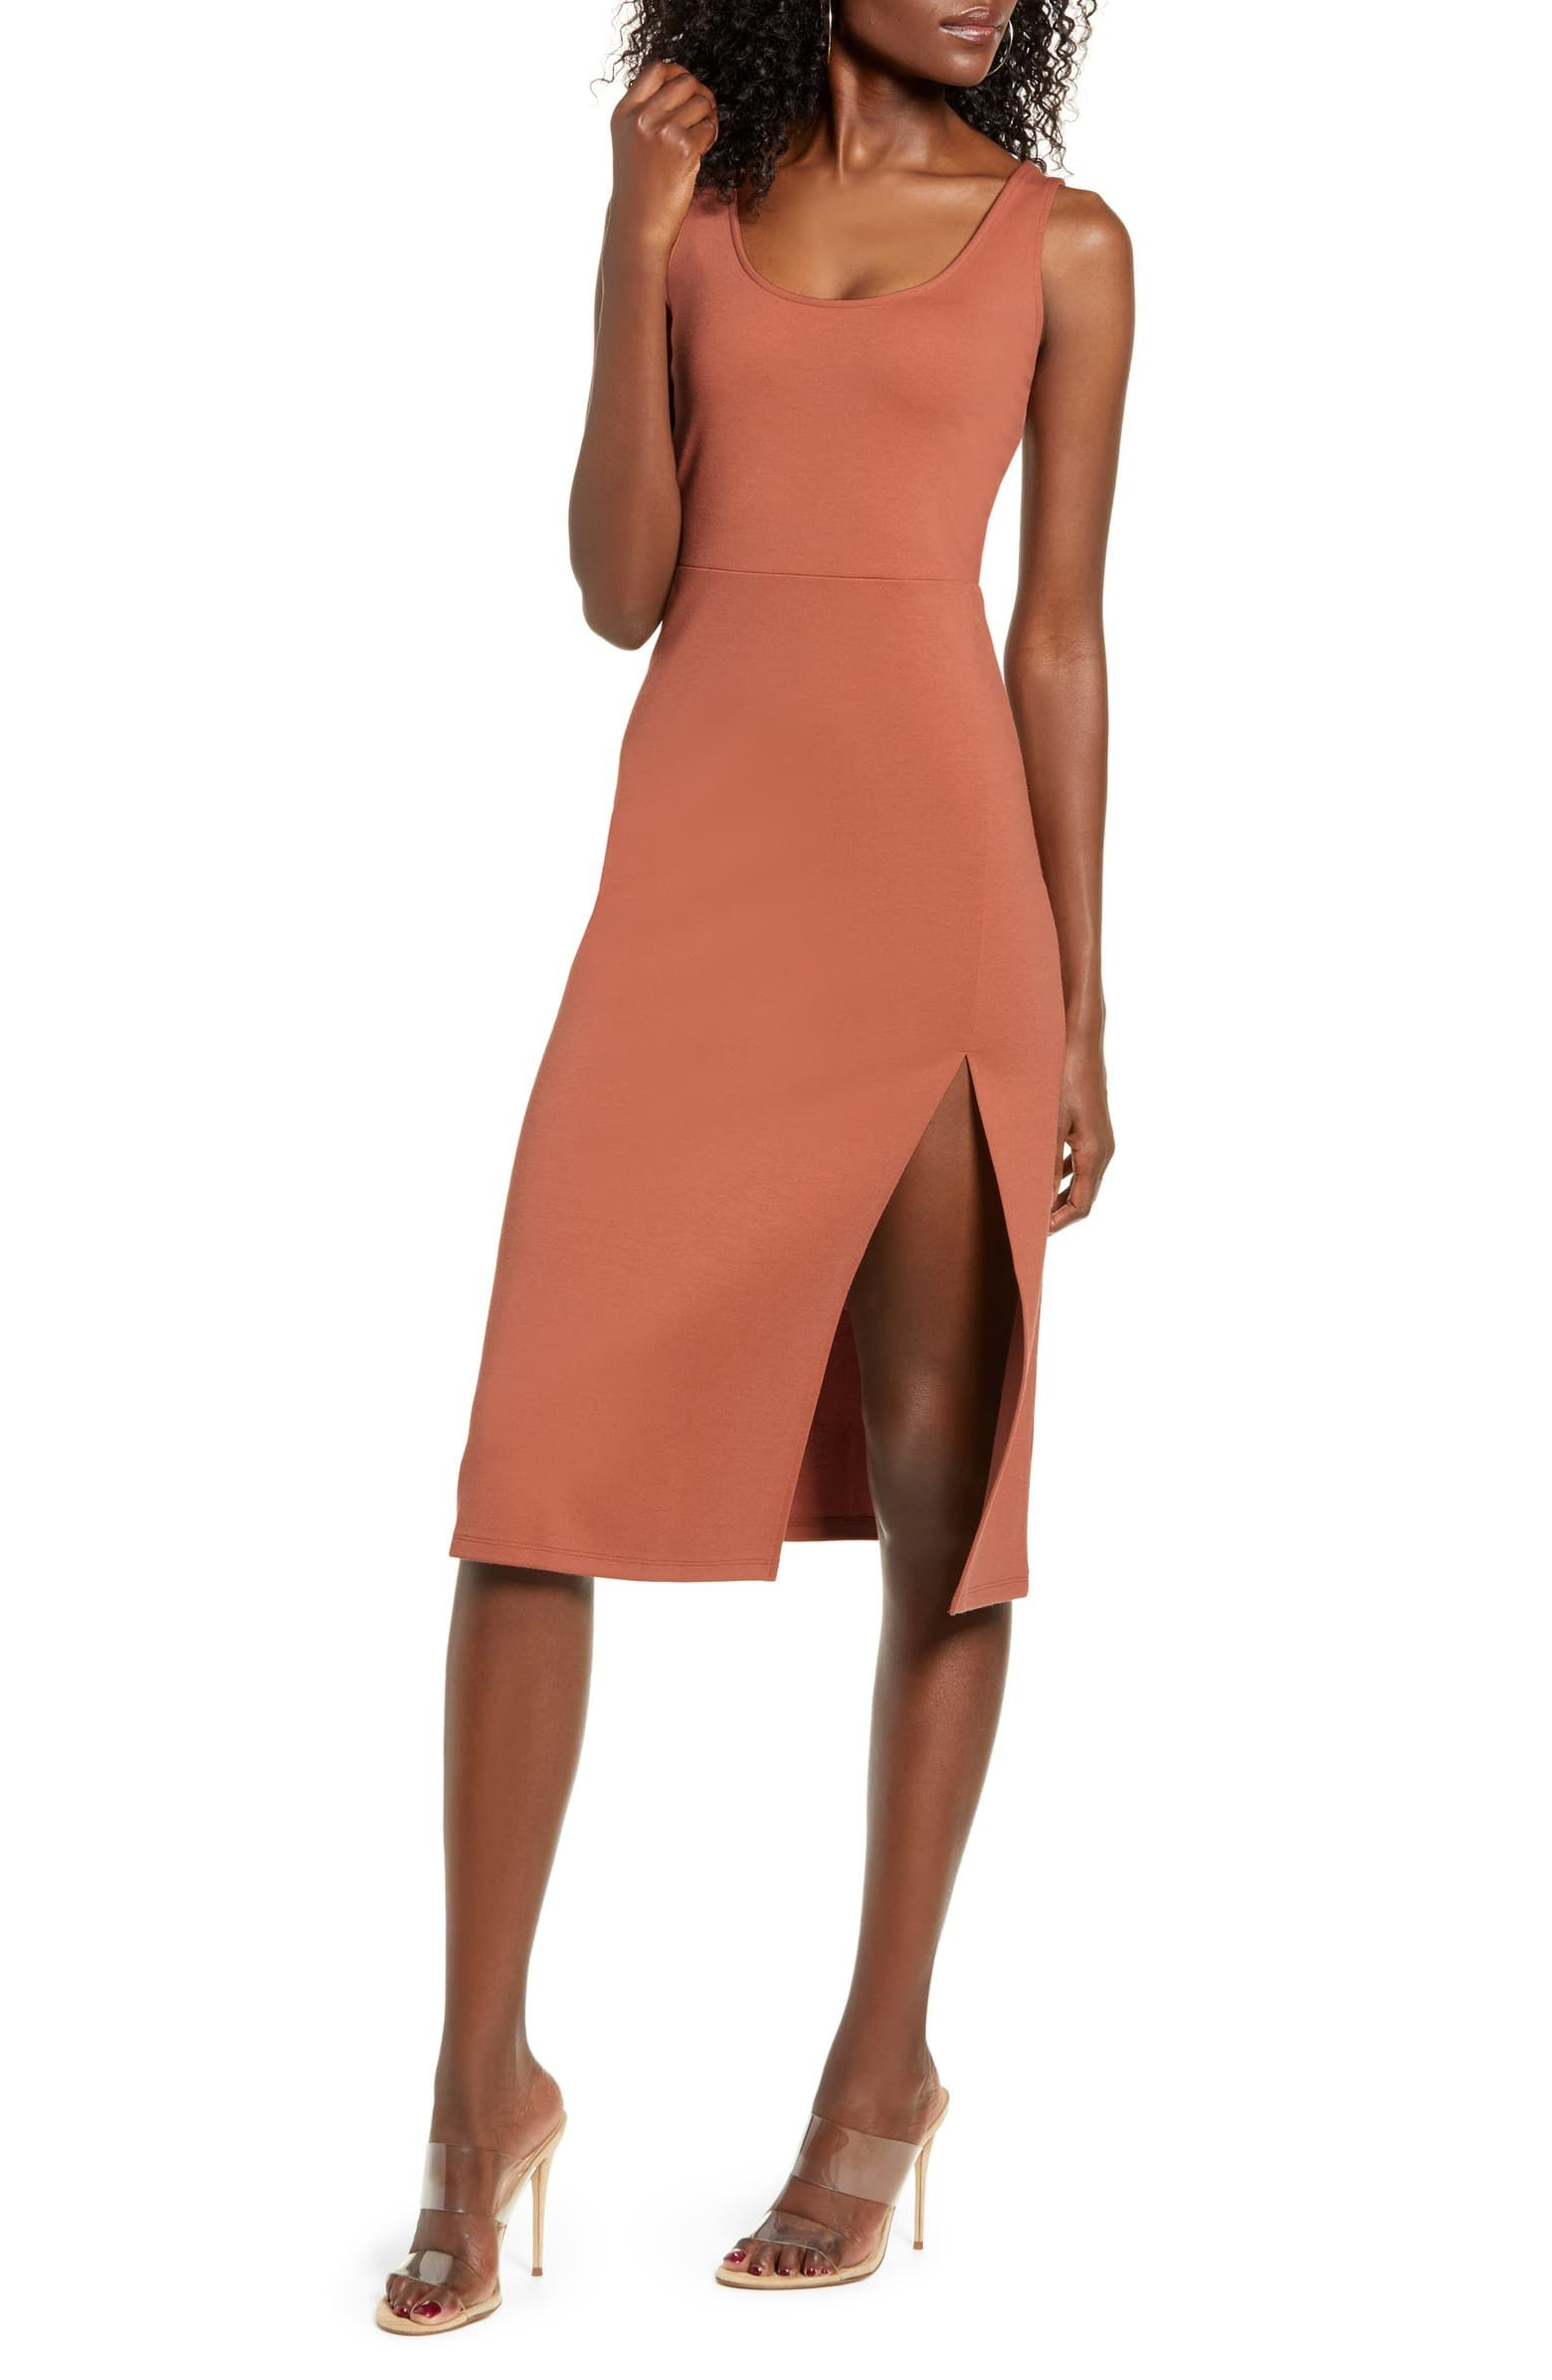 How To Style Scoop Neck Dress